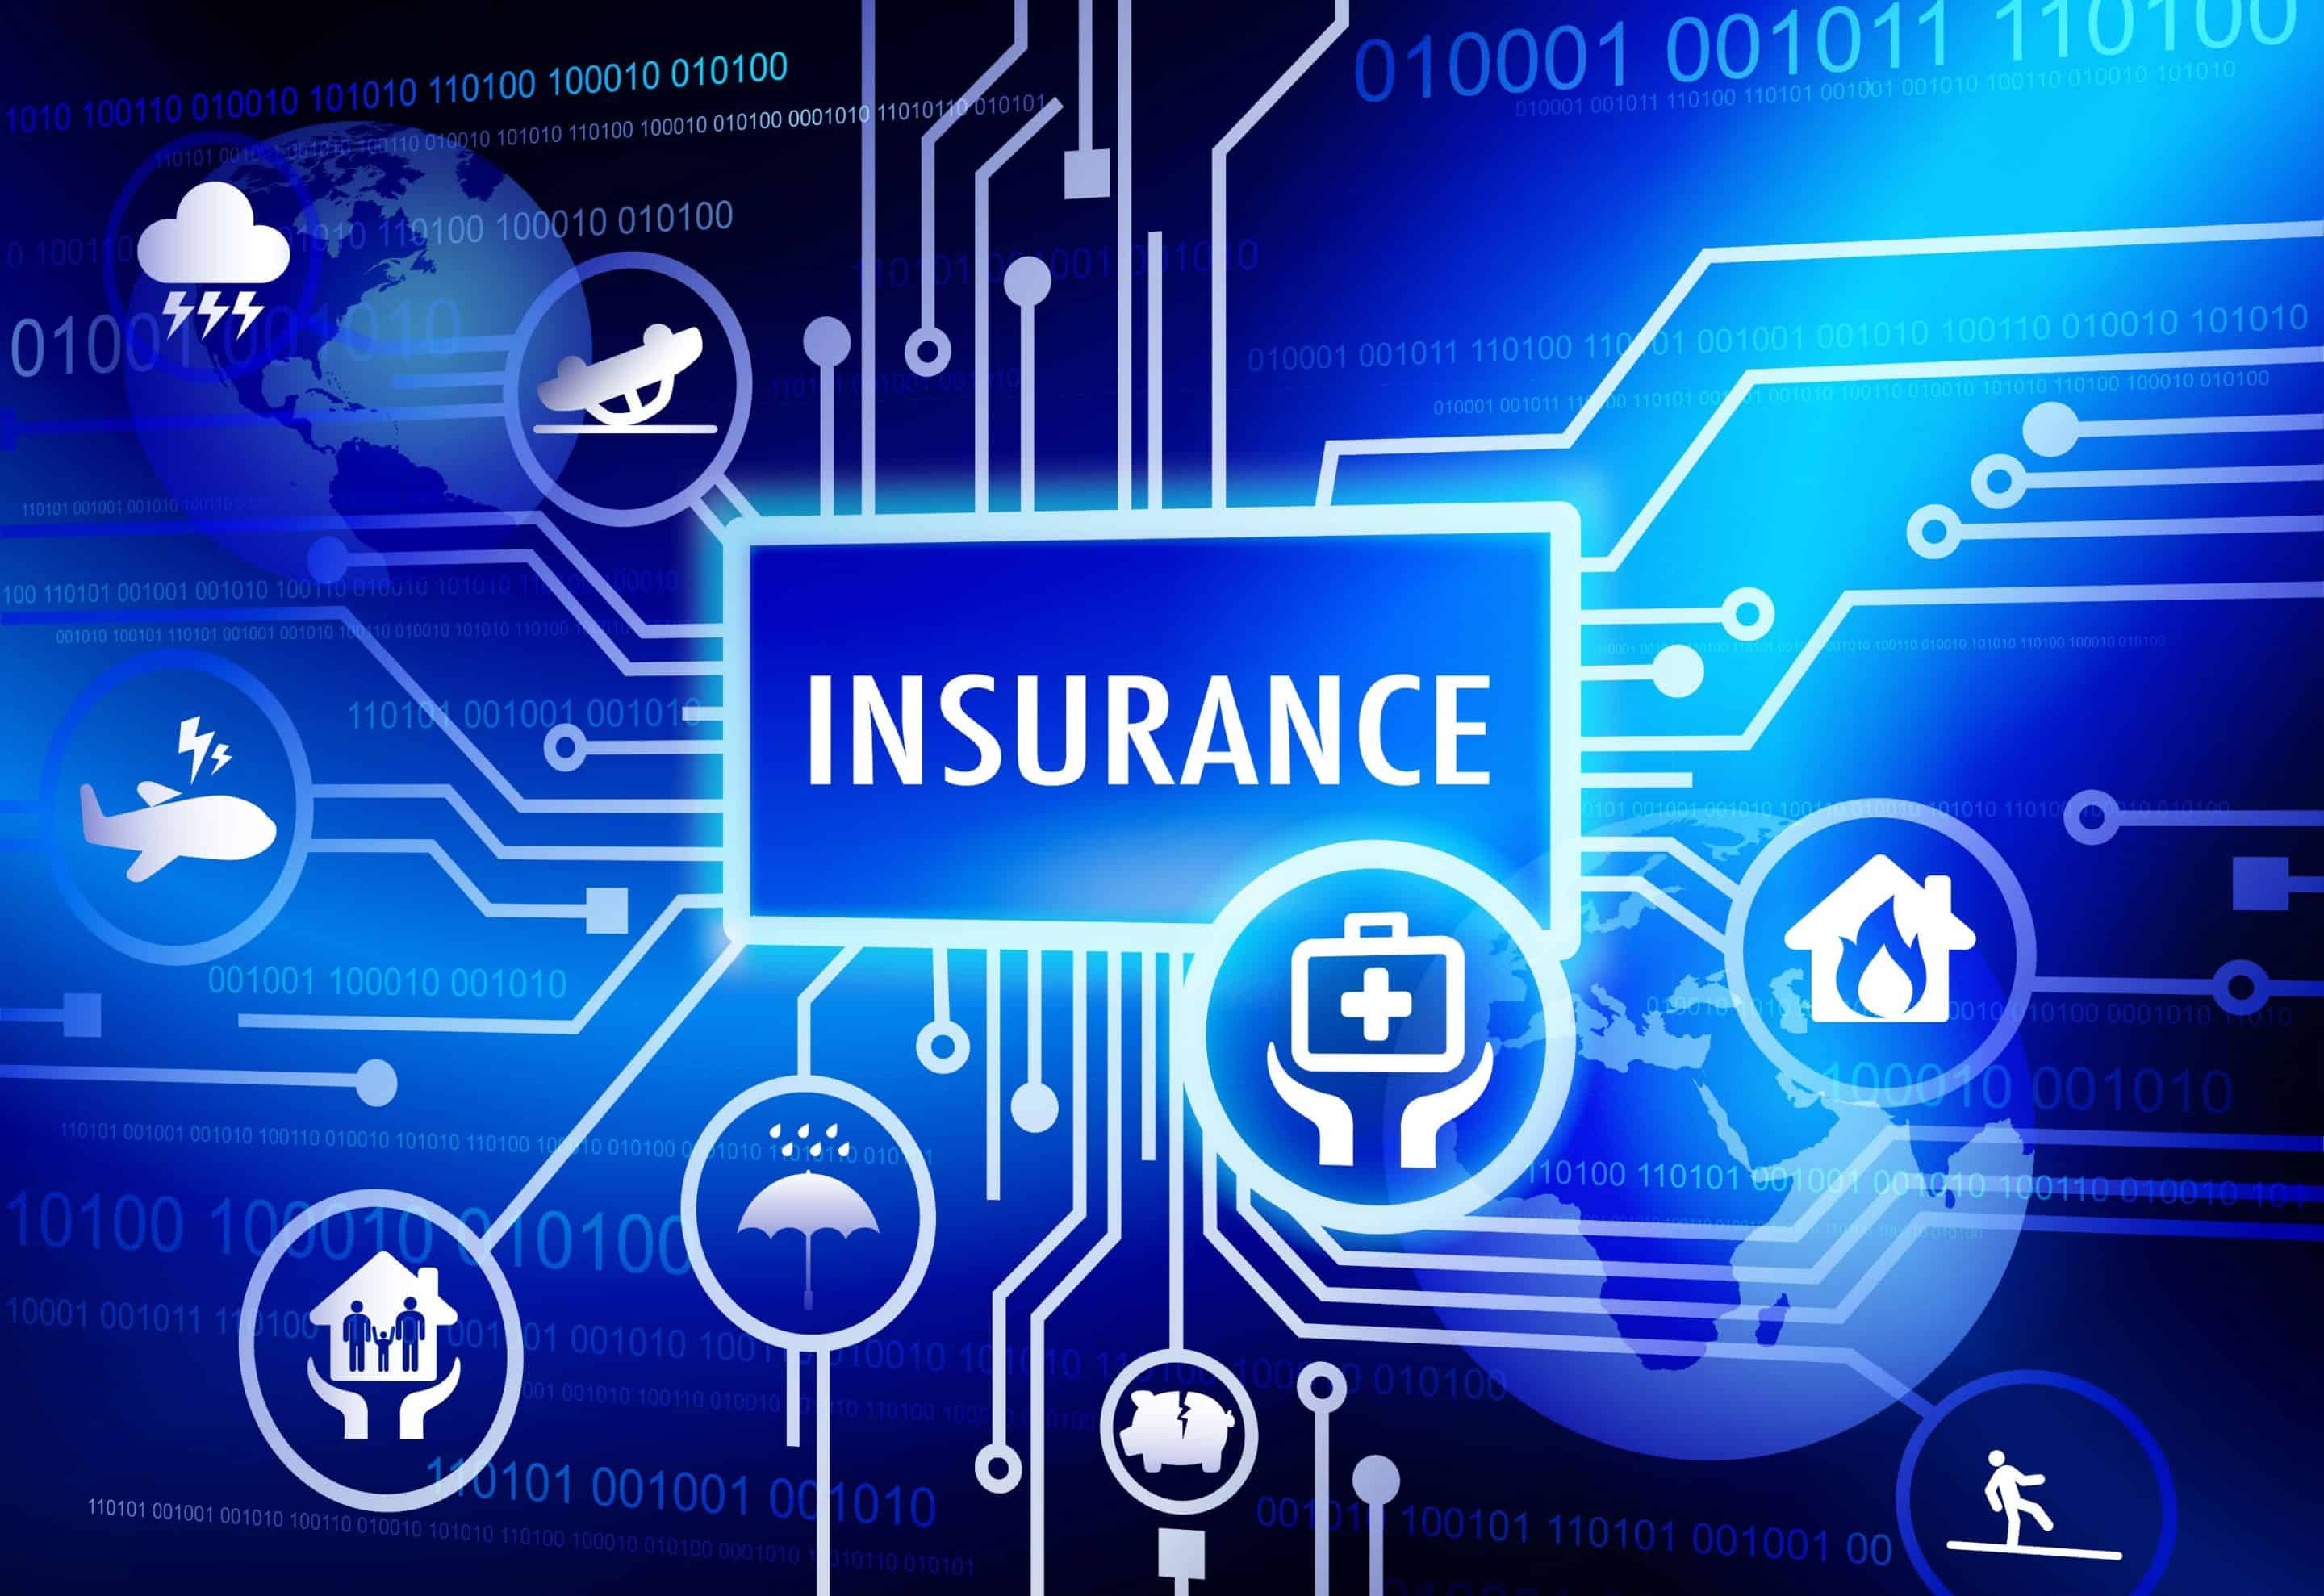 Insurtech investing: How collaboration with start-ups can benefit the insurance sector